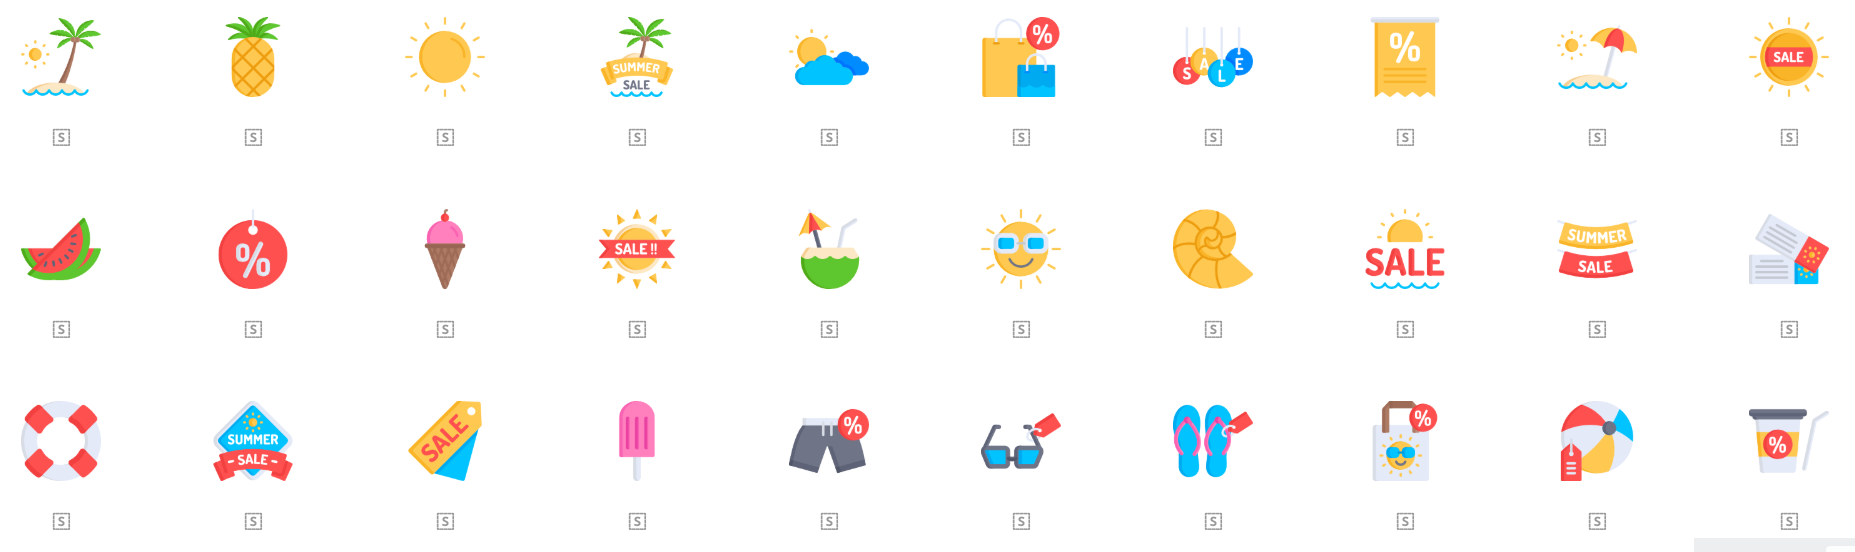 Free Icon Sets for Summer 2018 that will Heat up Your